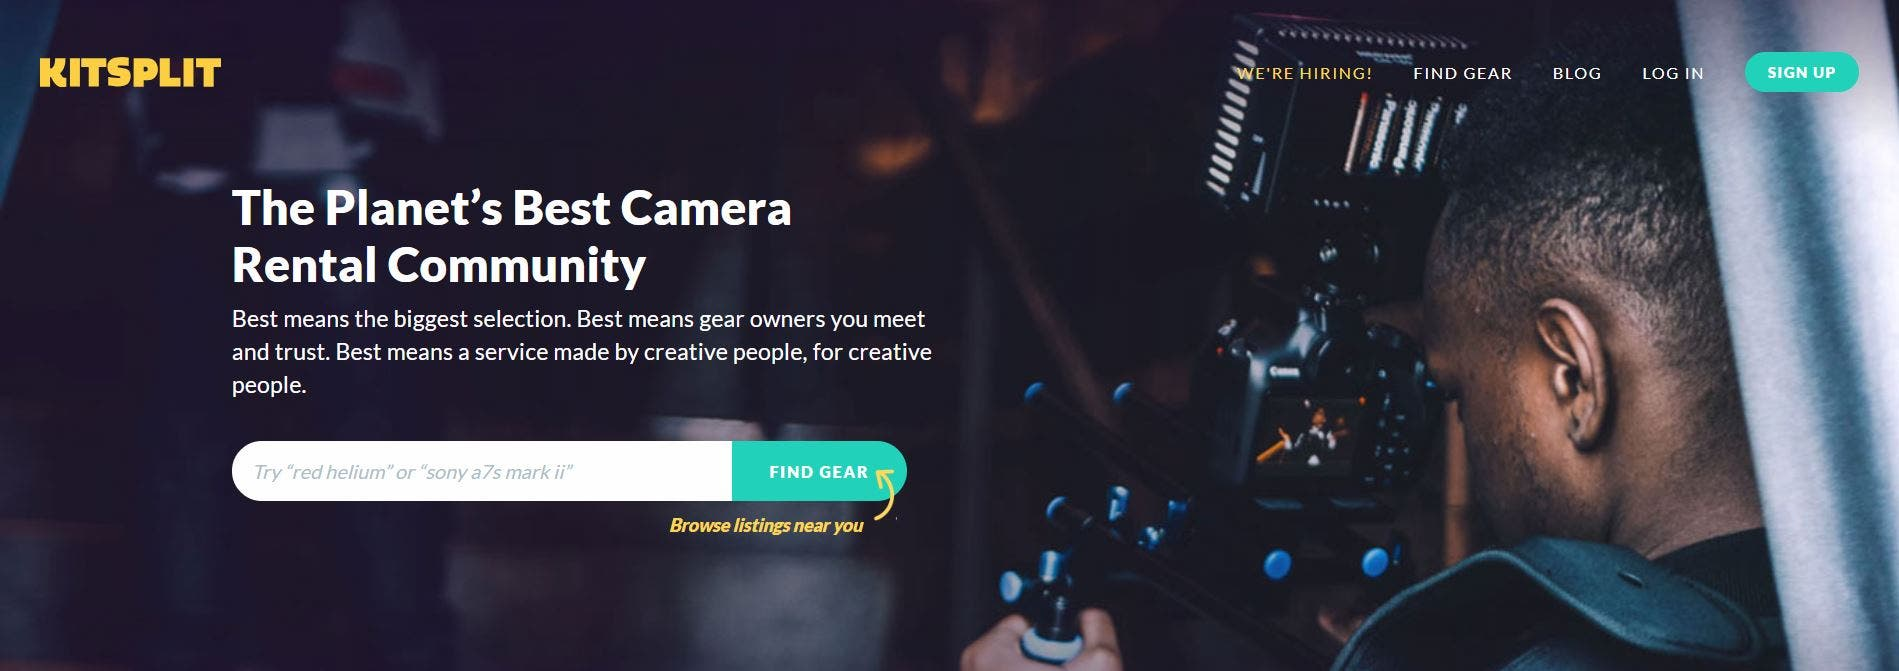 KitSplit Allows Pro Content Creatives to Get Affordable Gear Rental Insurance